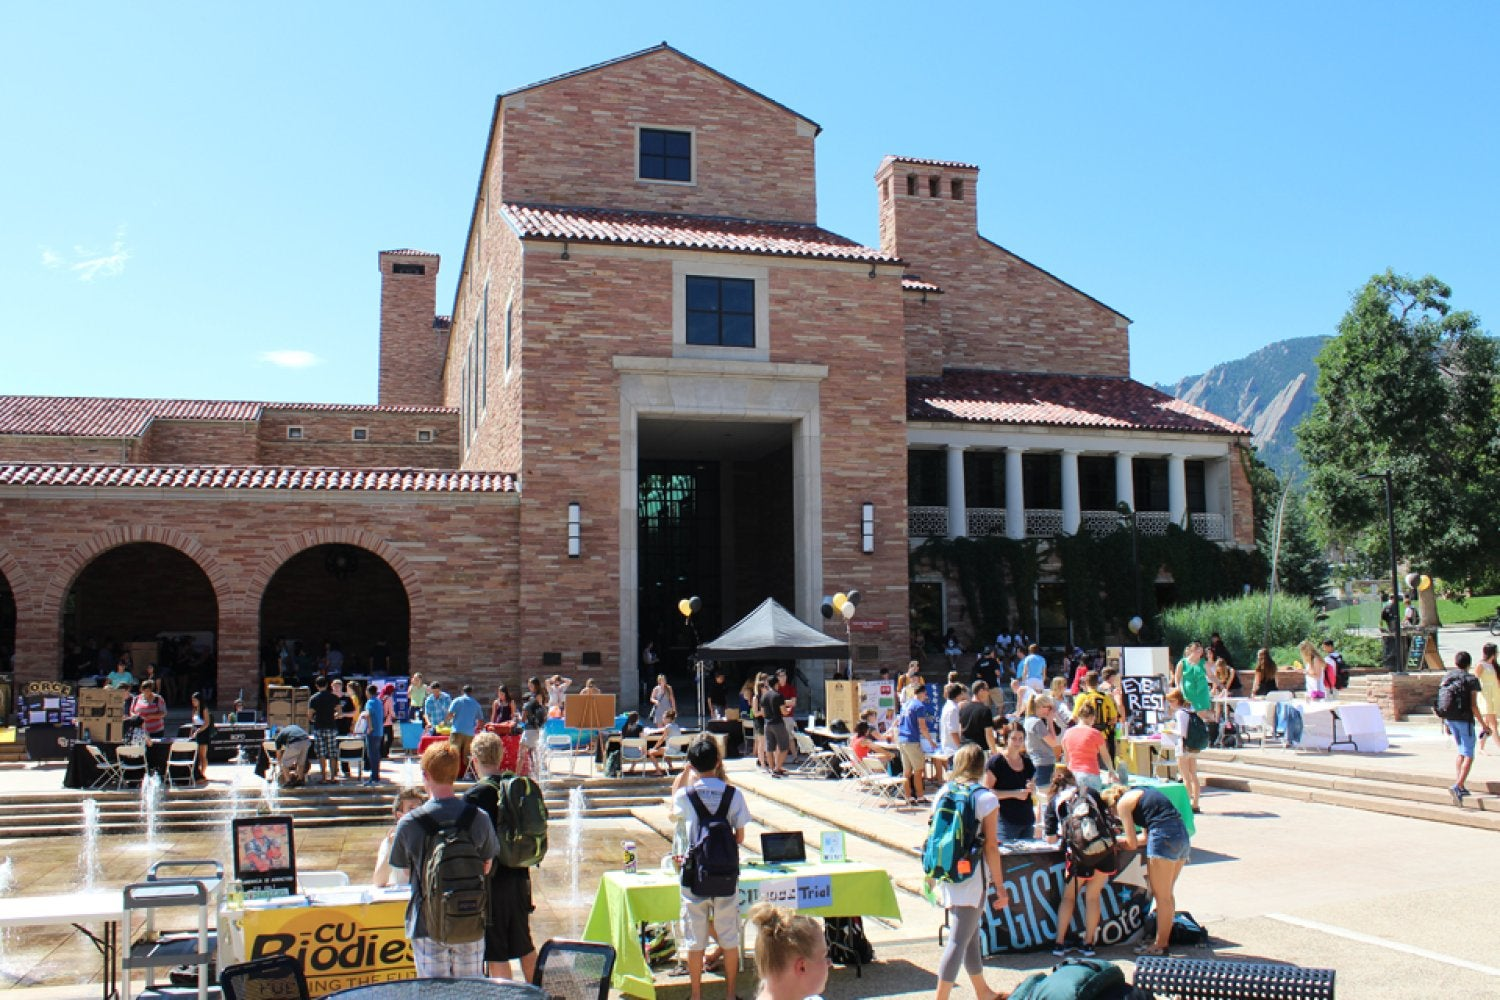 The Student Involvement Fair, where students meet and learn about over 100 student organizations and clubs on campus.